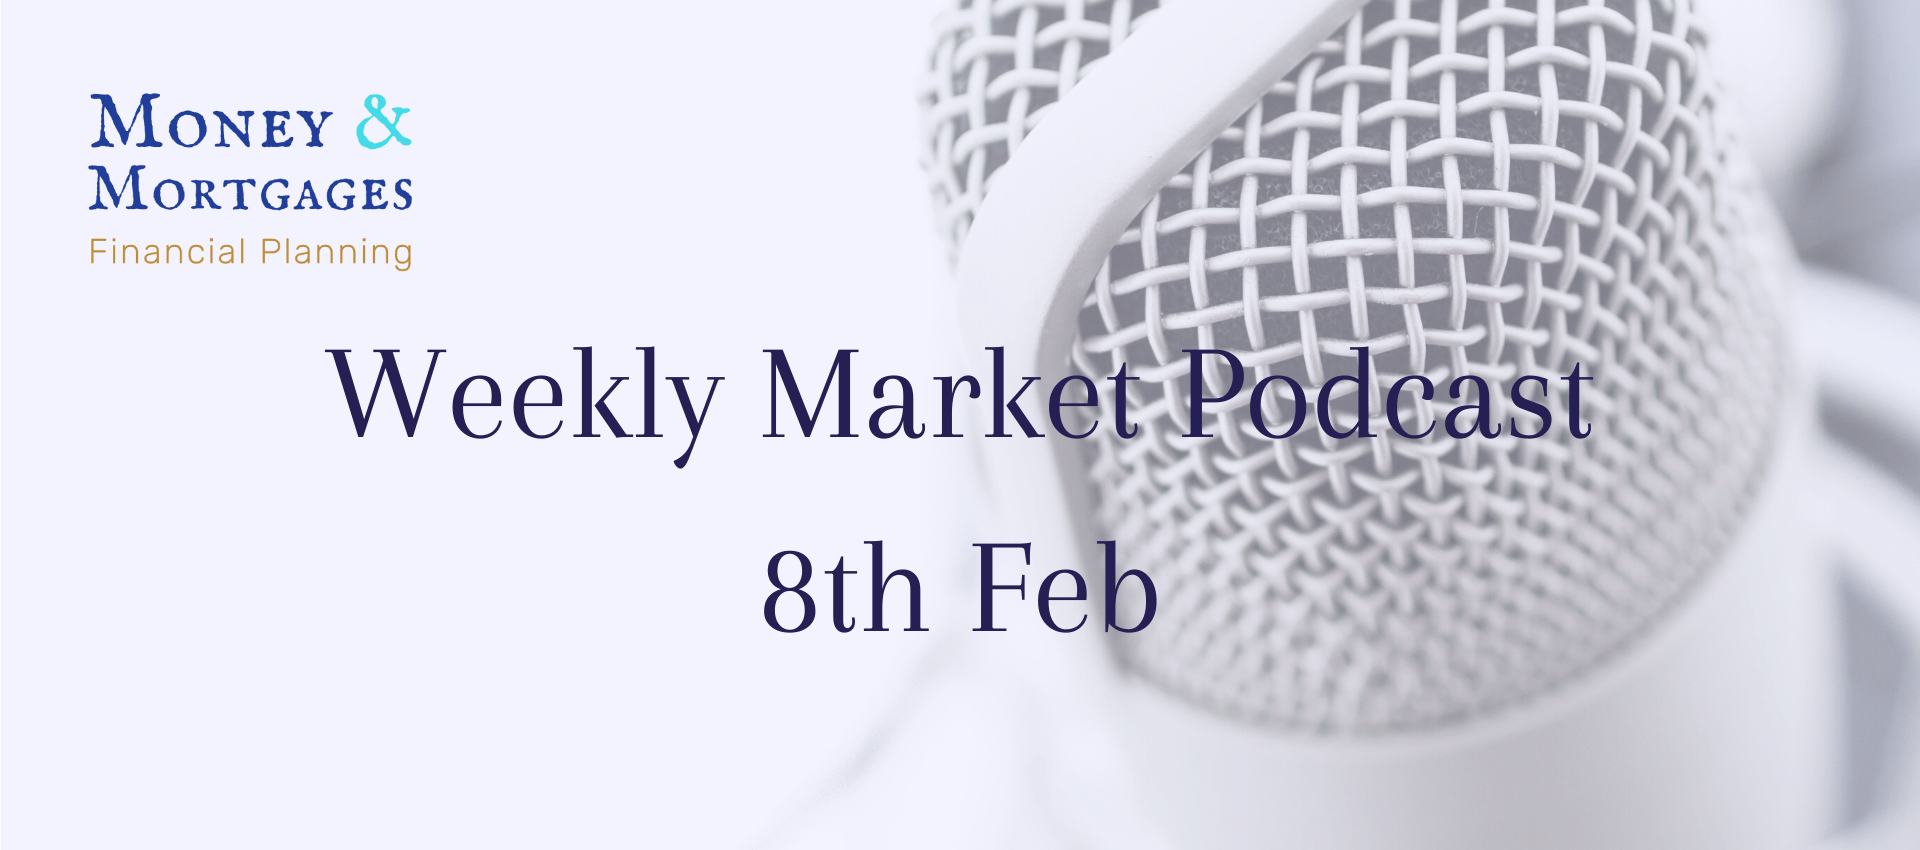 8th Feb weekly market podcast